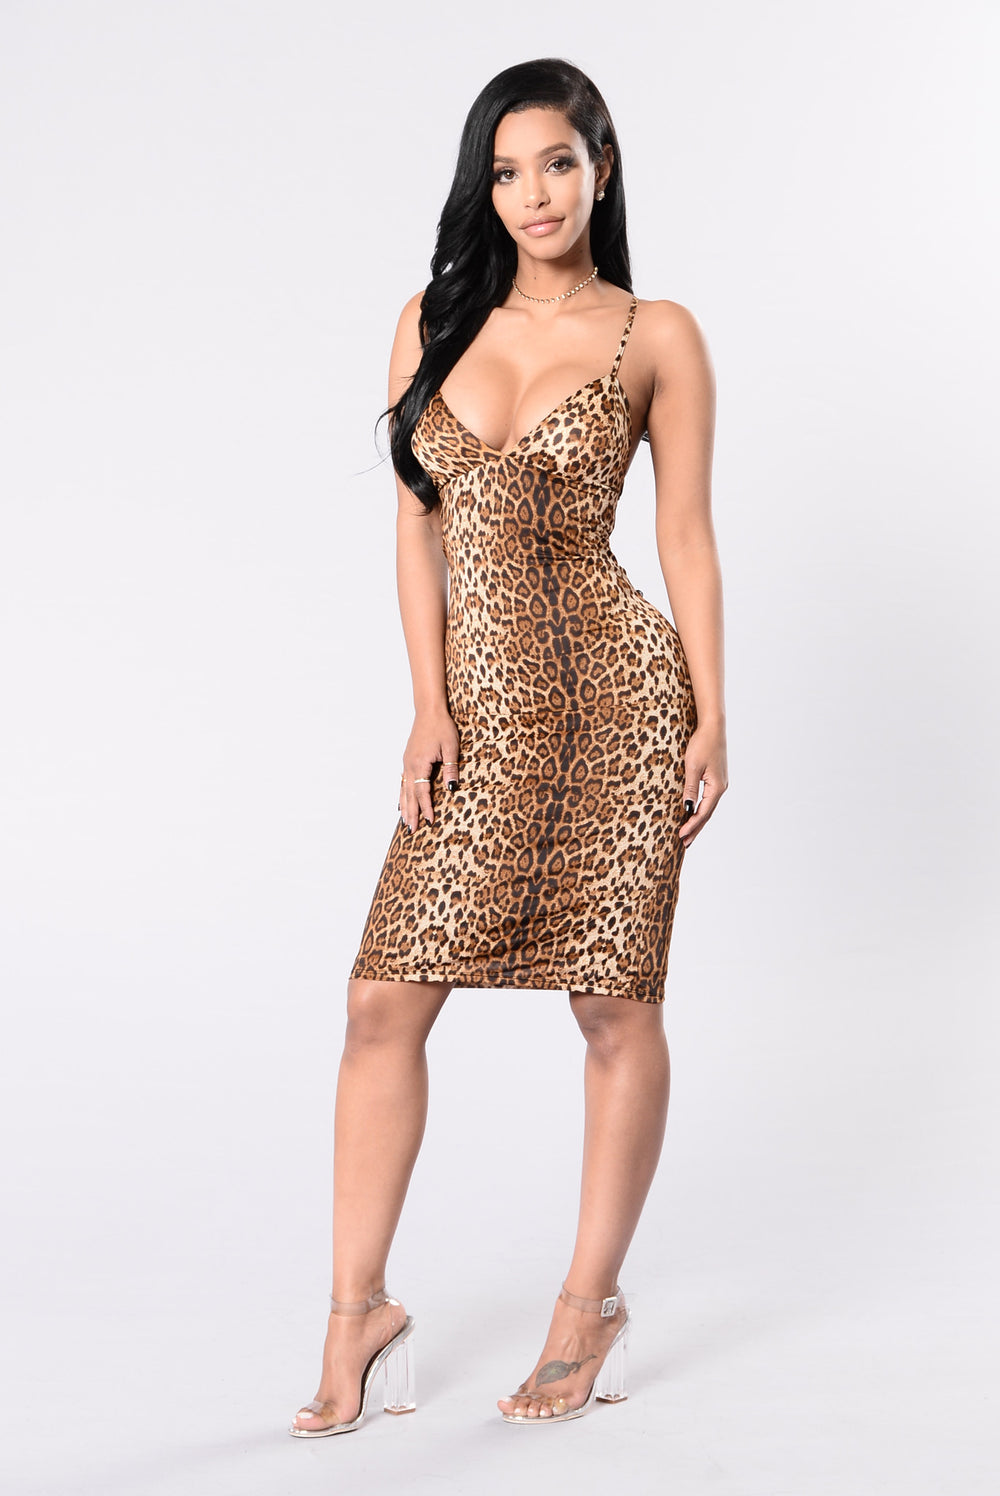 Great Catch Dress - Leopard